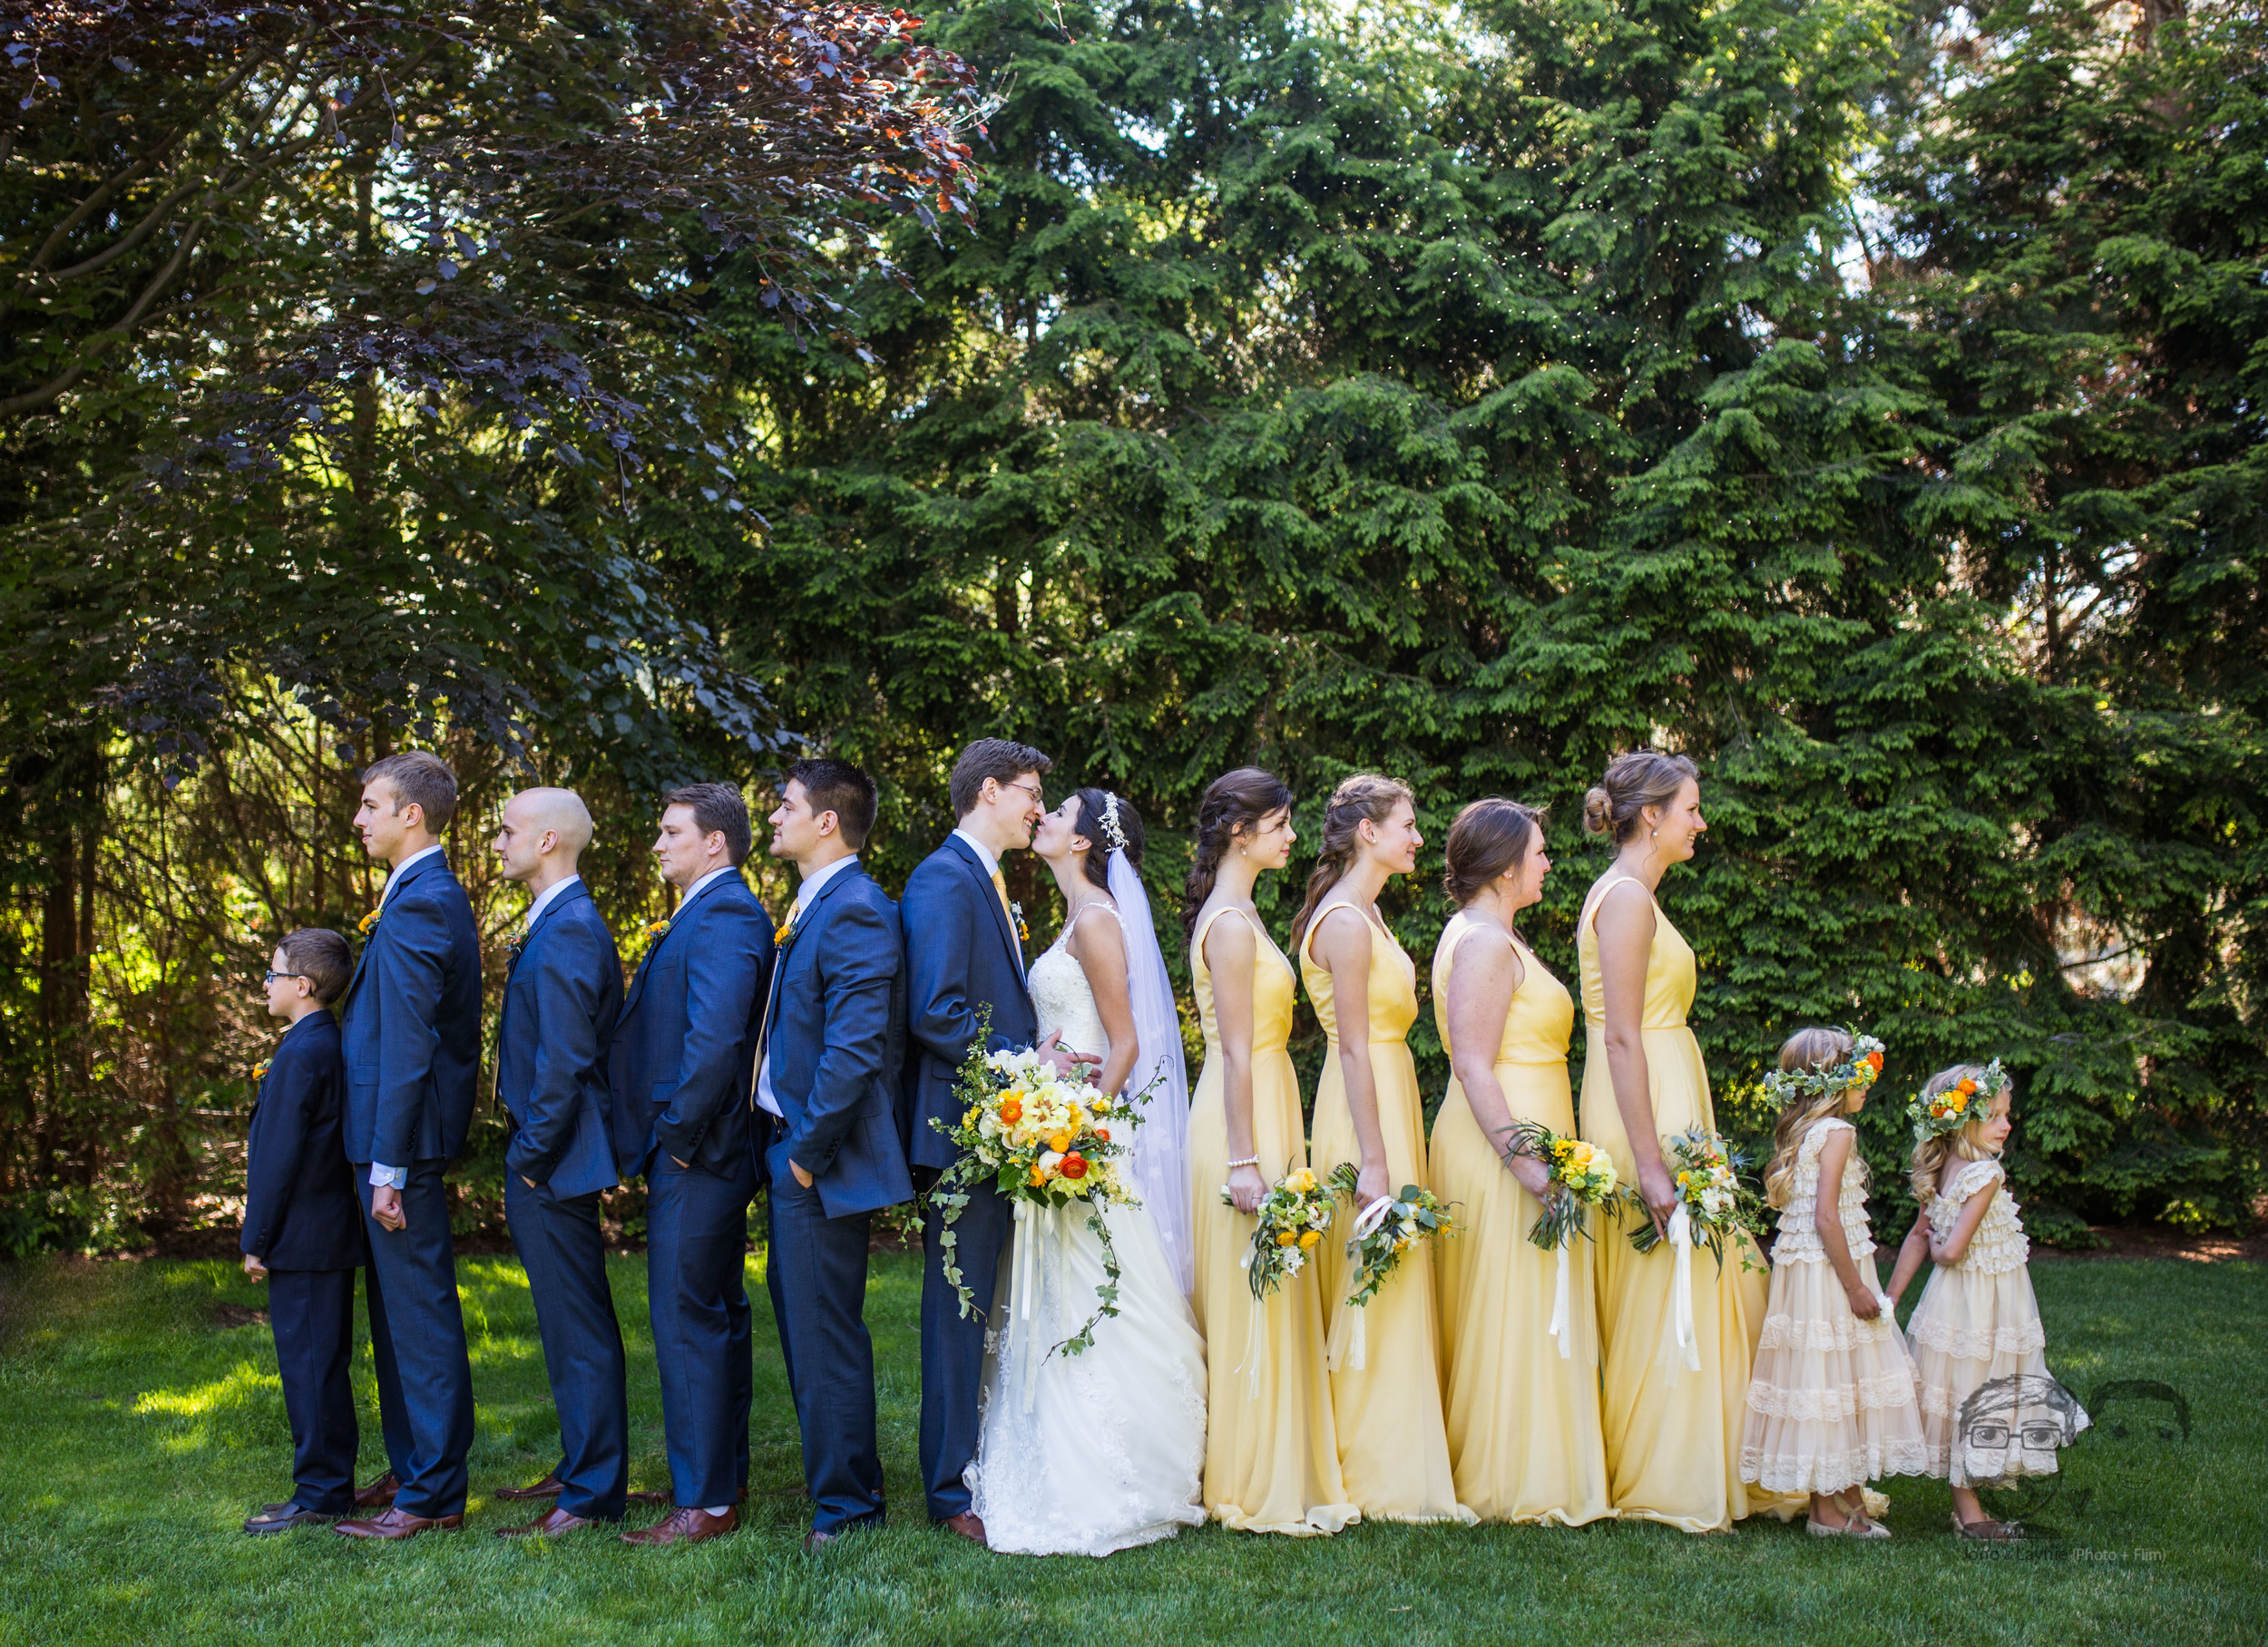 069Toronto Wedding Photographers and Videographers-Jono & Laynie Co.jpg